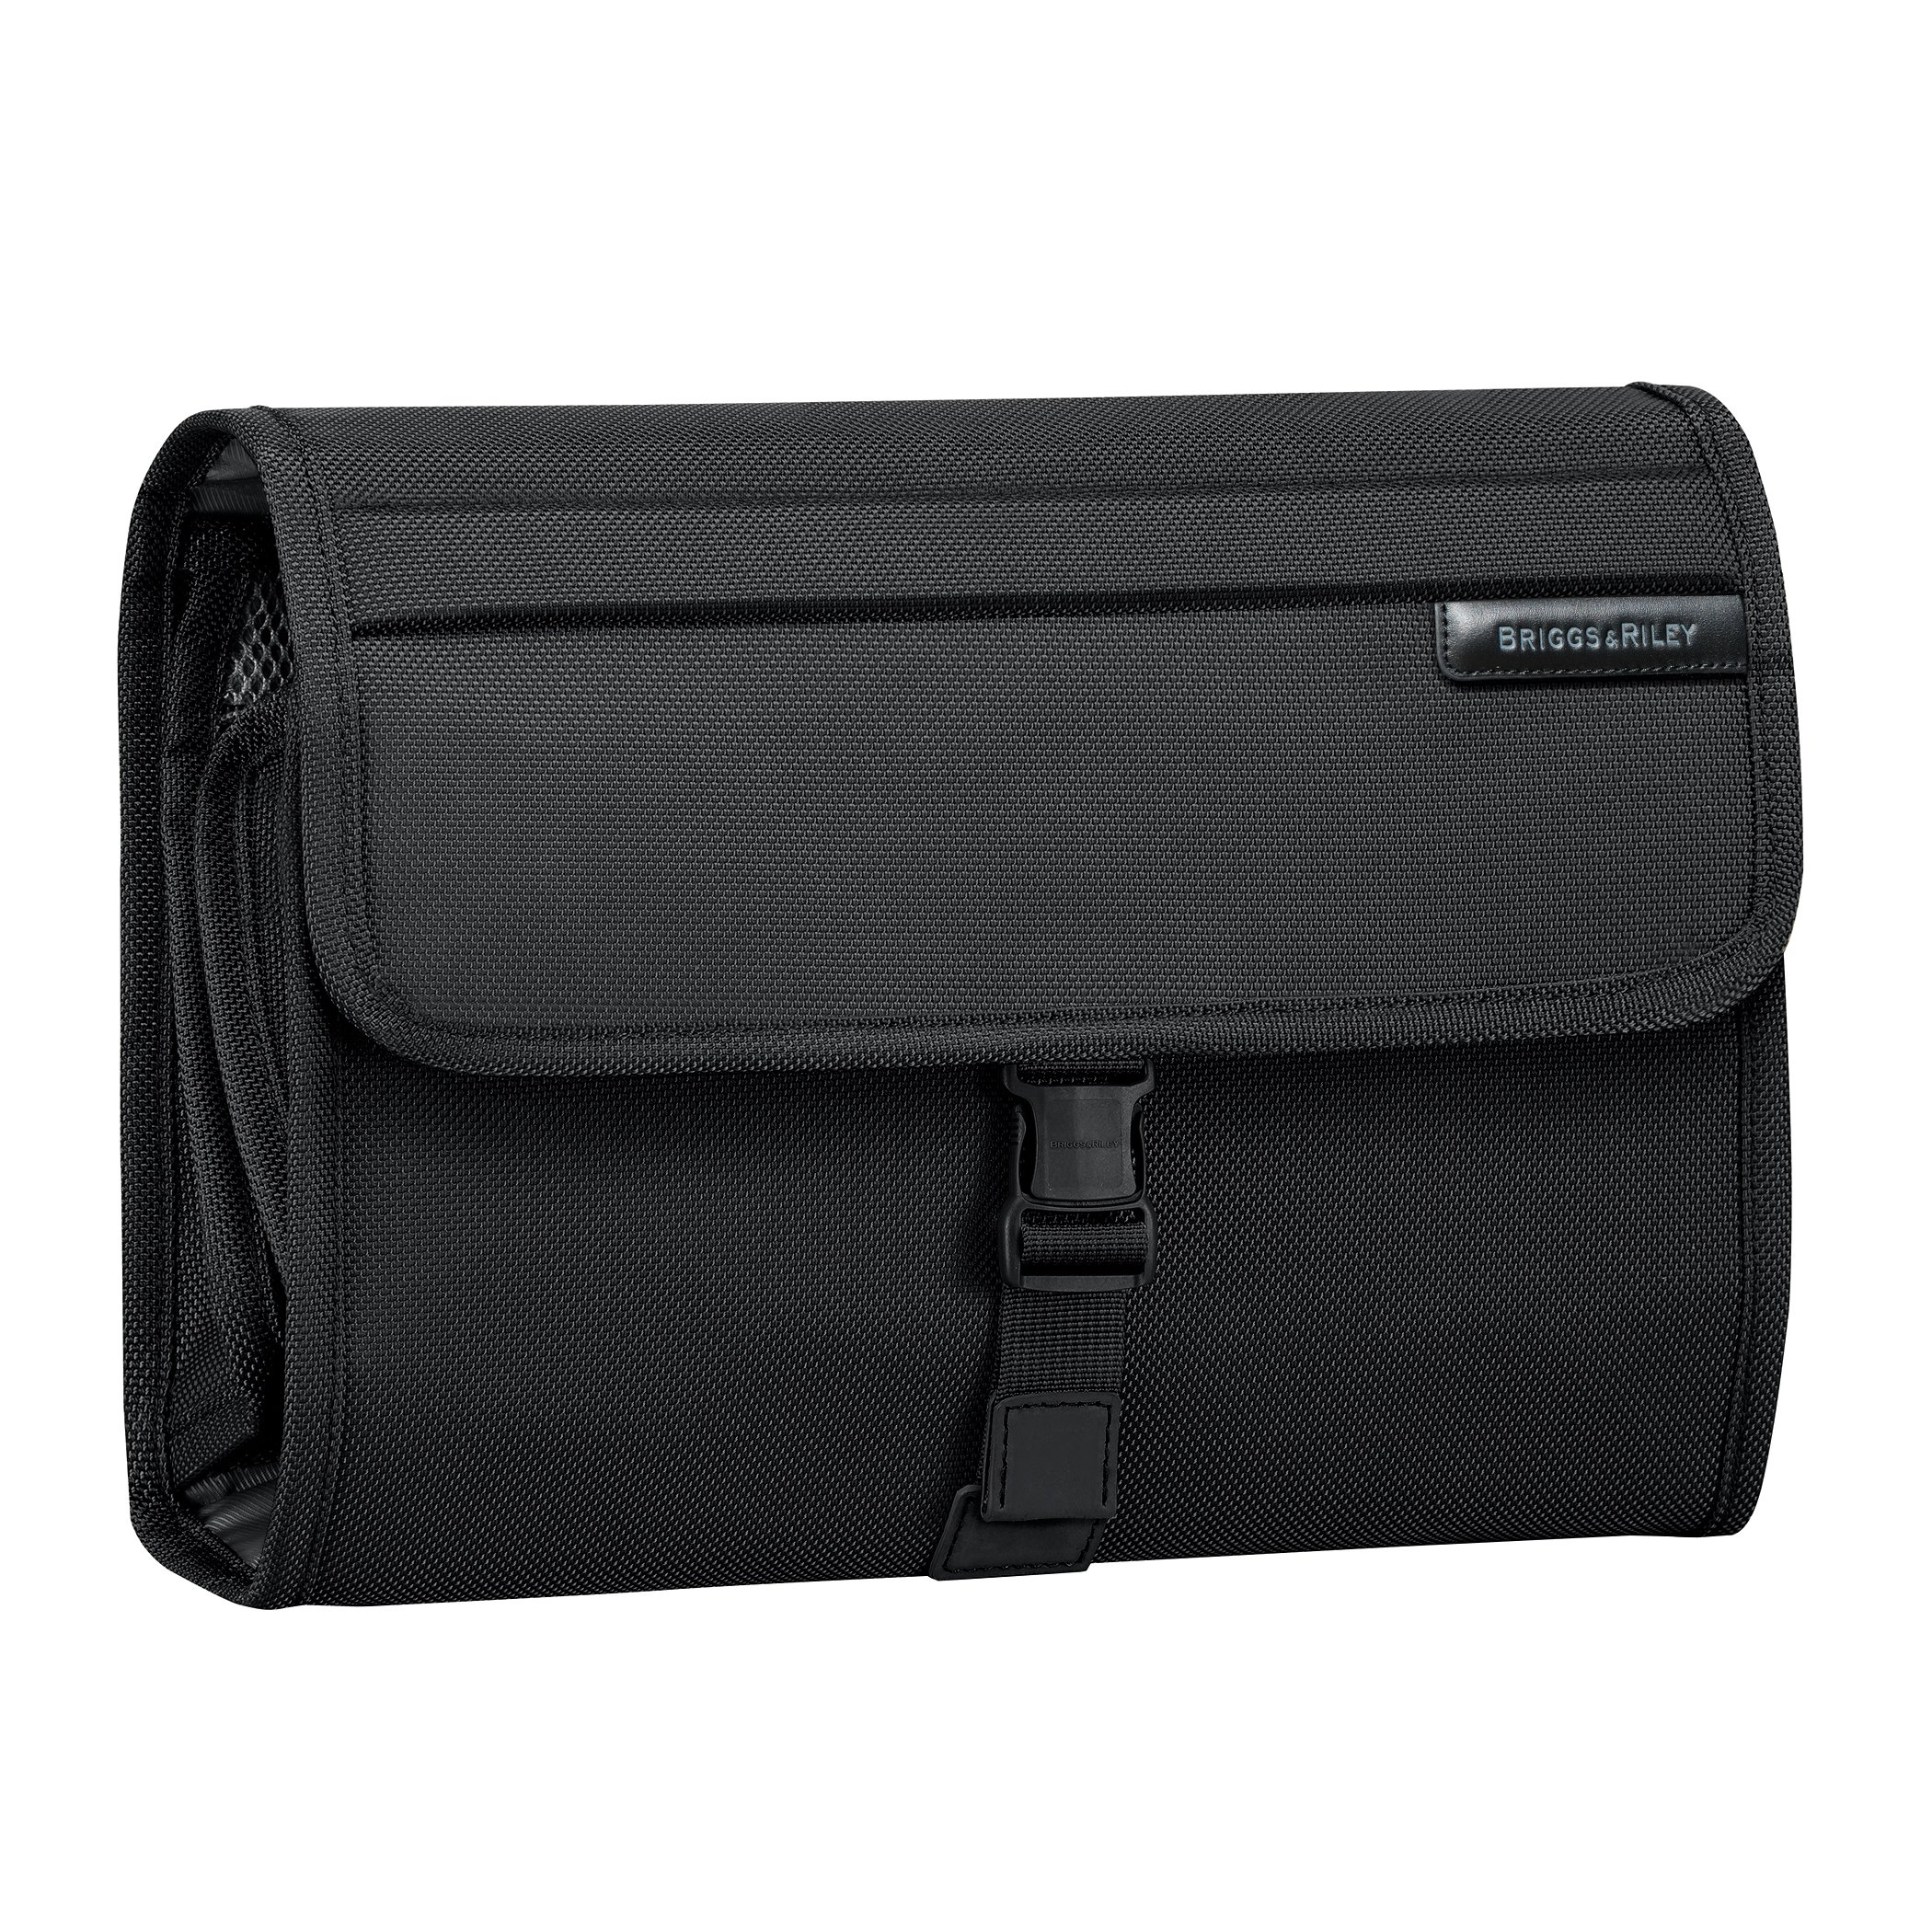 Briggs & Riley Deluxe Toiletry Kit, Black, One Size by Briggs & Riley